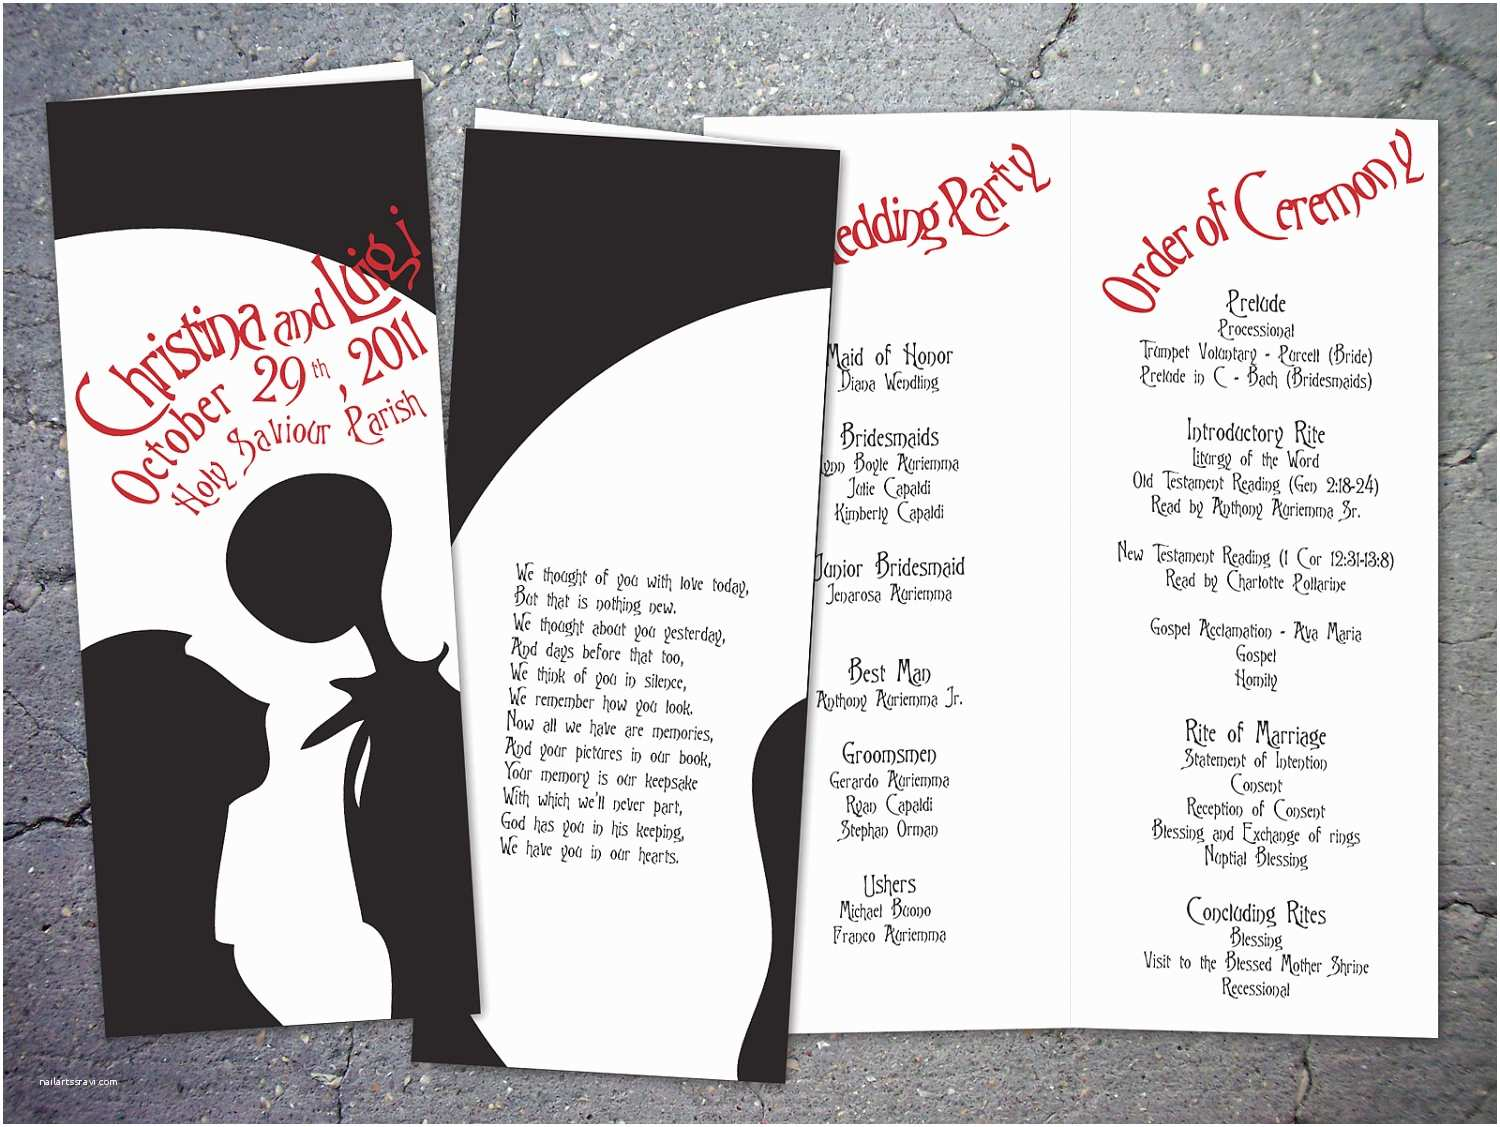 Nightmare before Christmas Wedding Invitations 10 Nightmare before Christmas Inspired Wedding by Papercrew